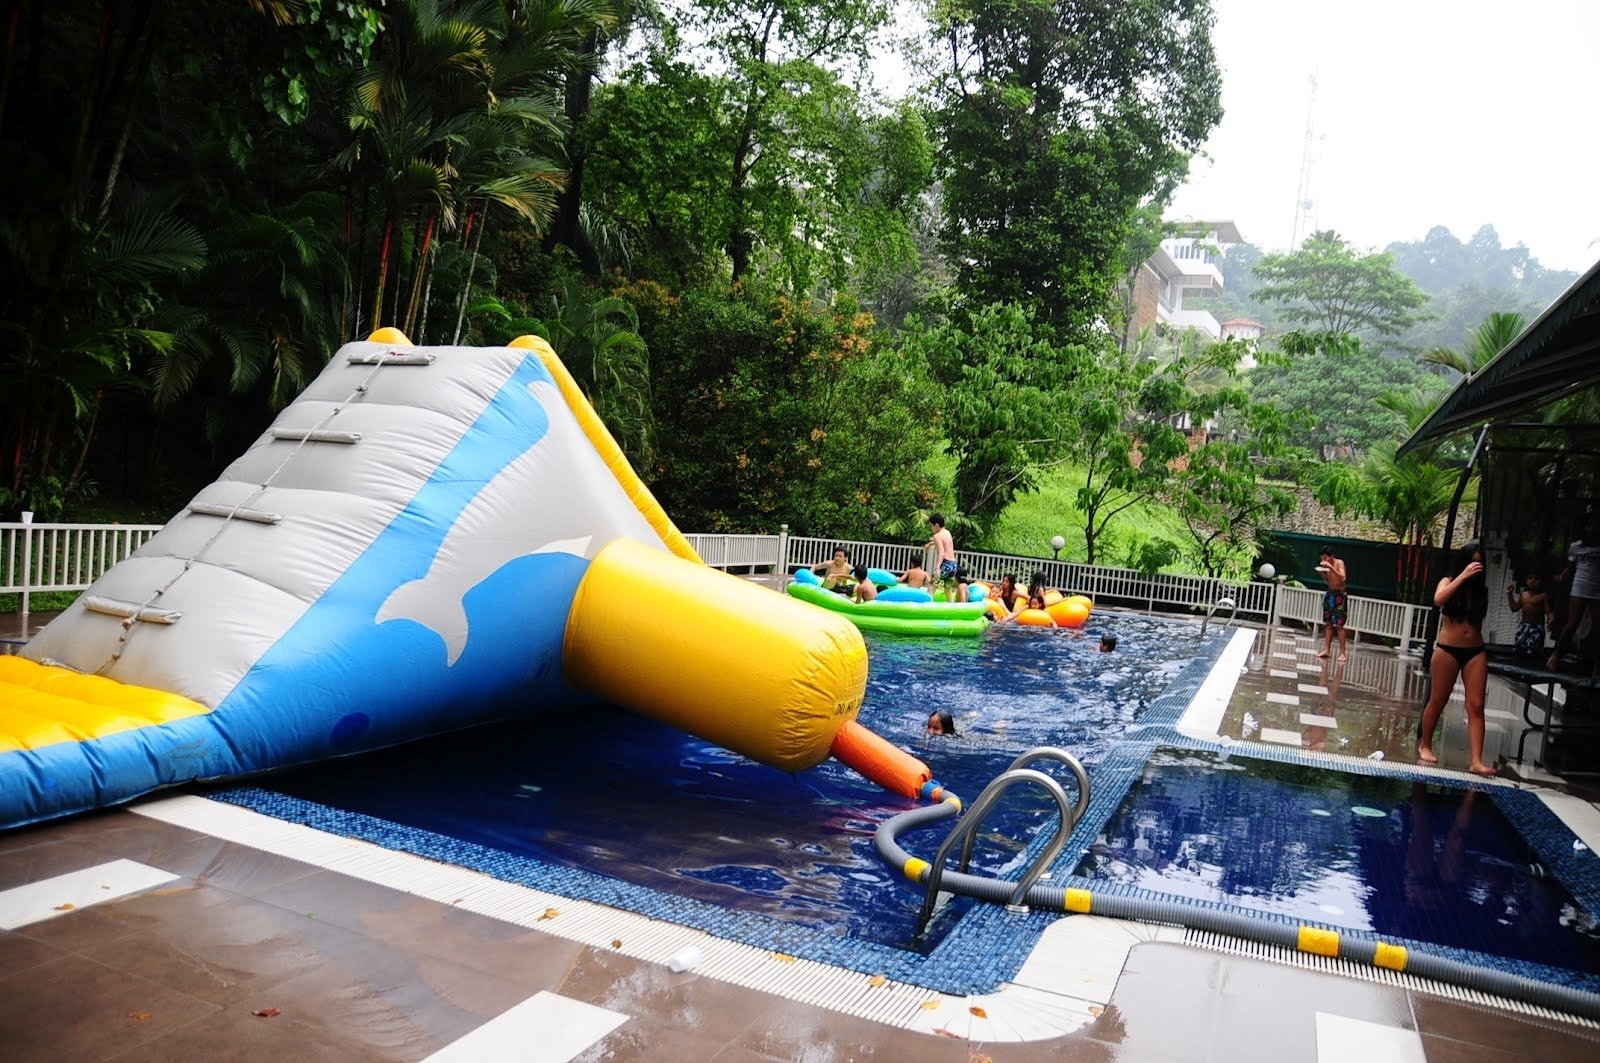 10 Elegant Fun Teenage Birthday Party Ideas event directus pool party fun for kids teens adults 2021